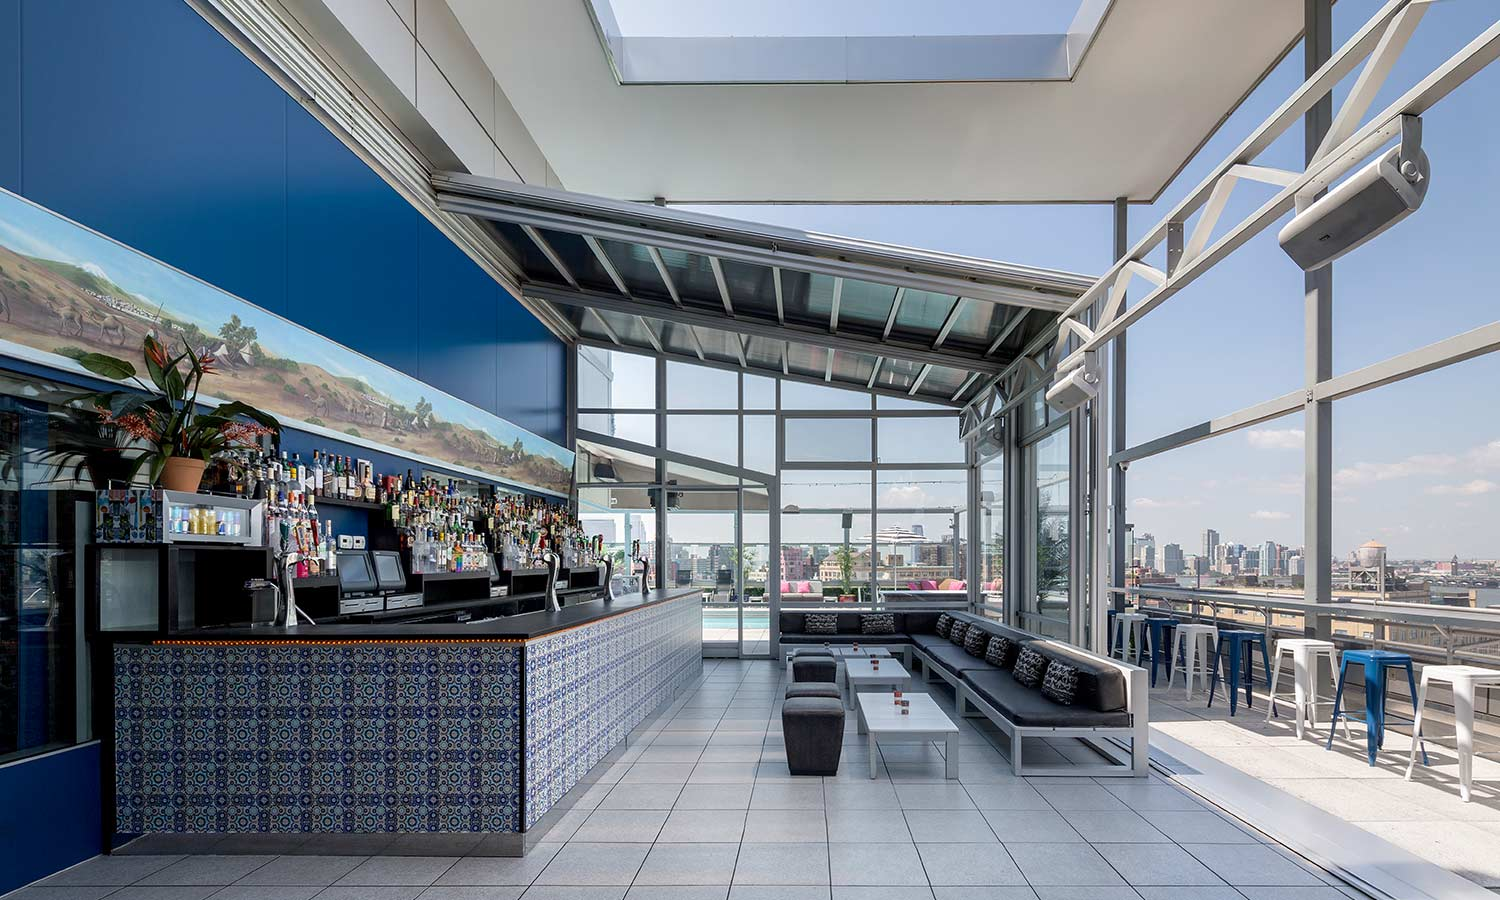 Rooftop dining al fresco luxe beat magazine for Rooftop bar and terrace